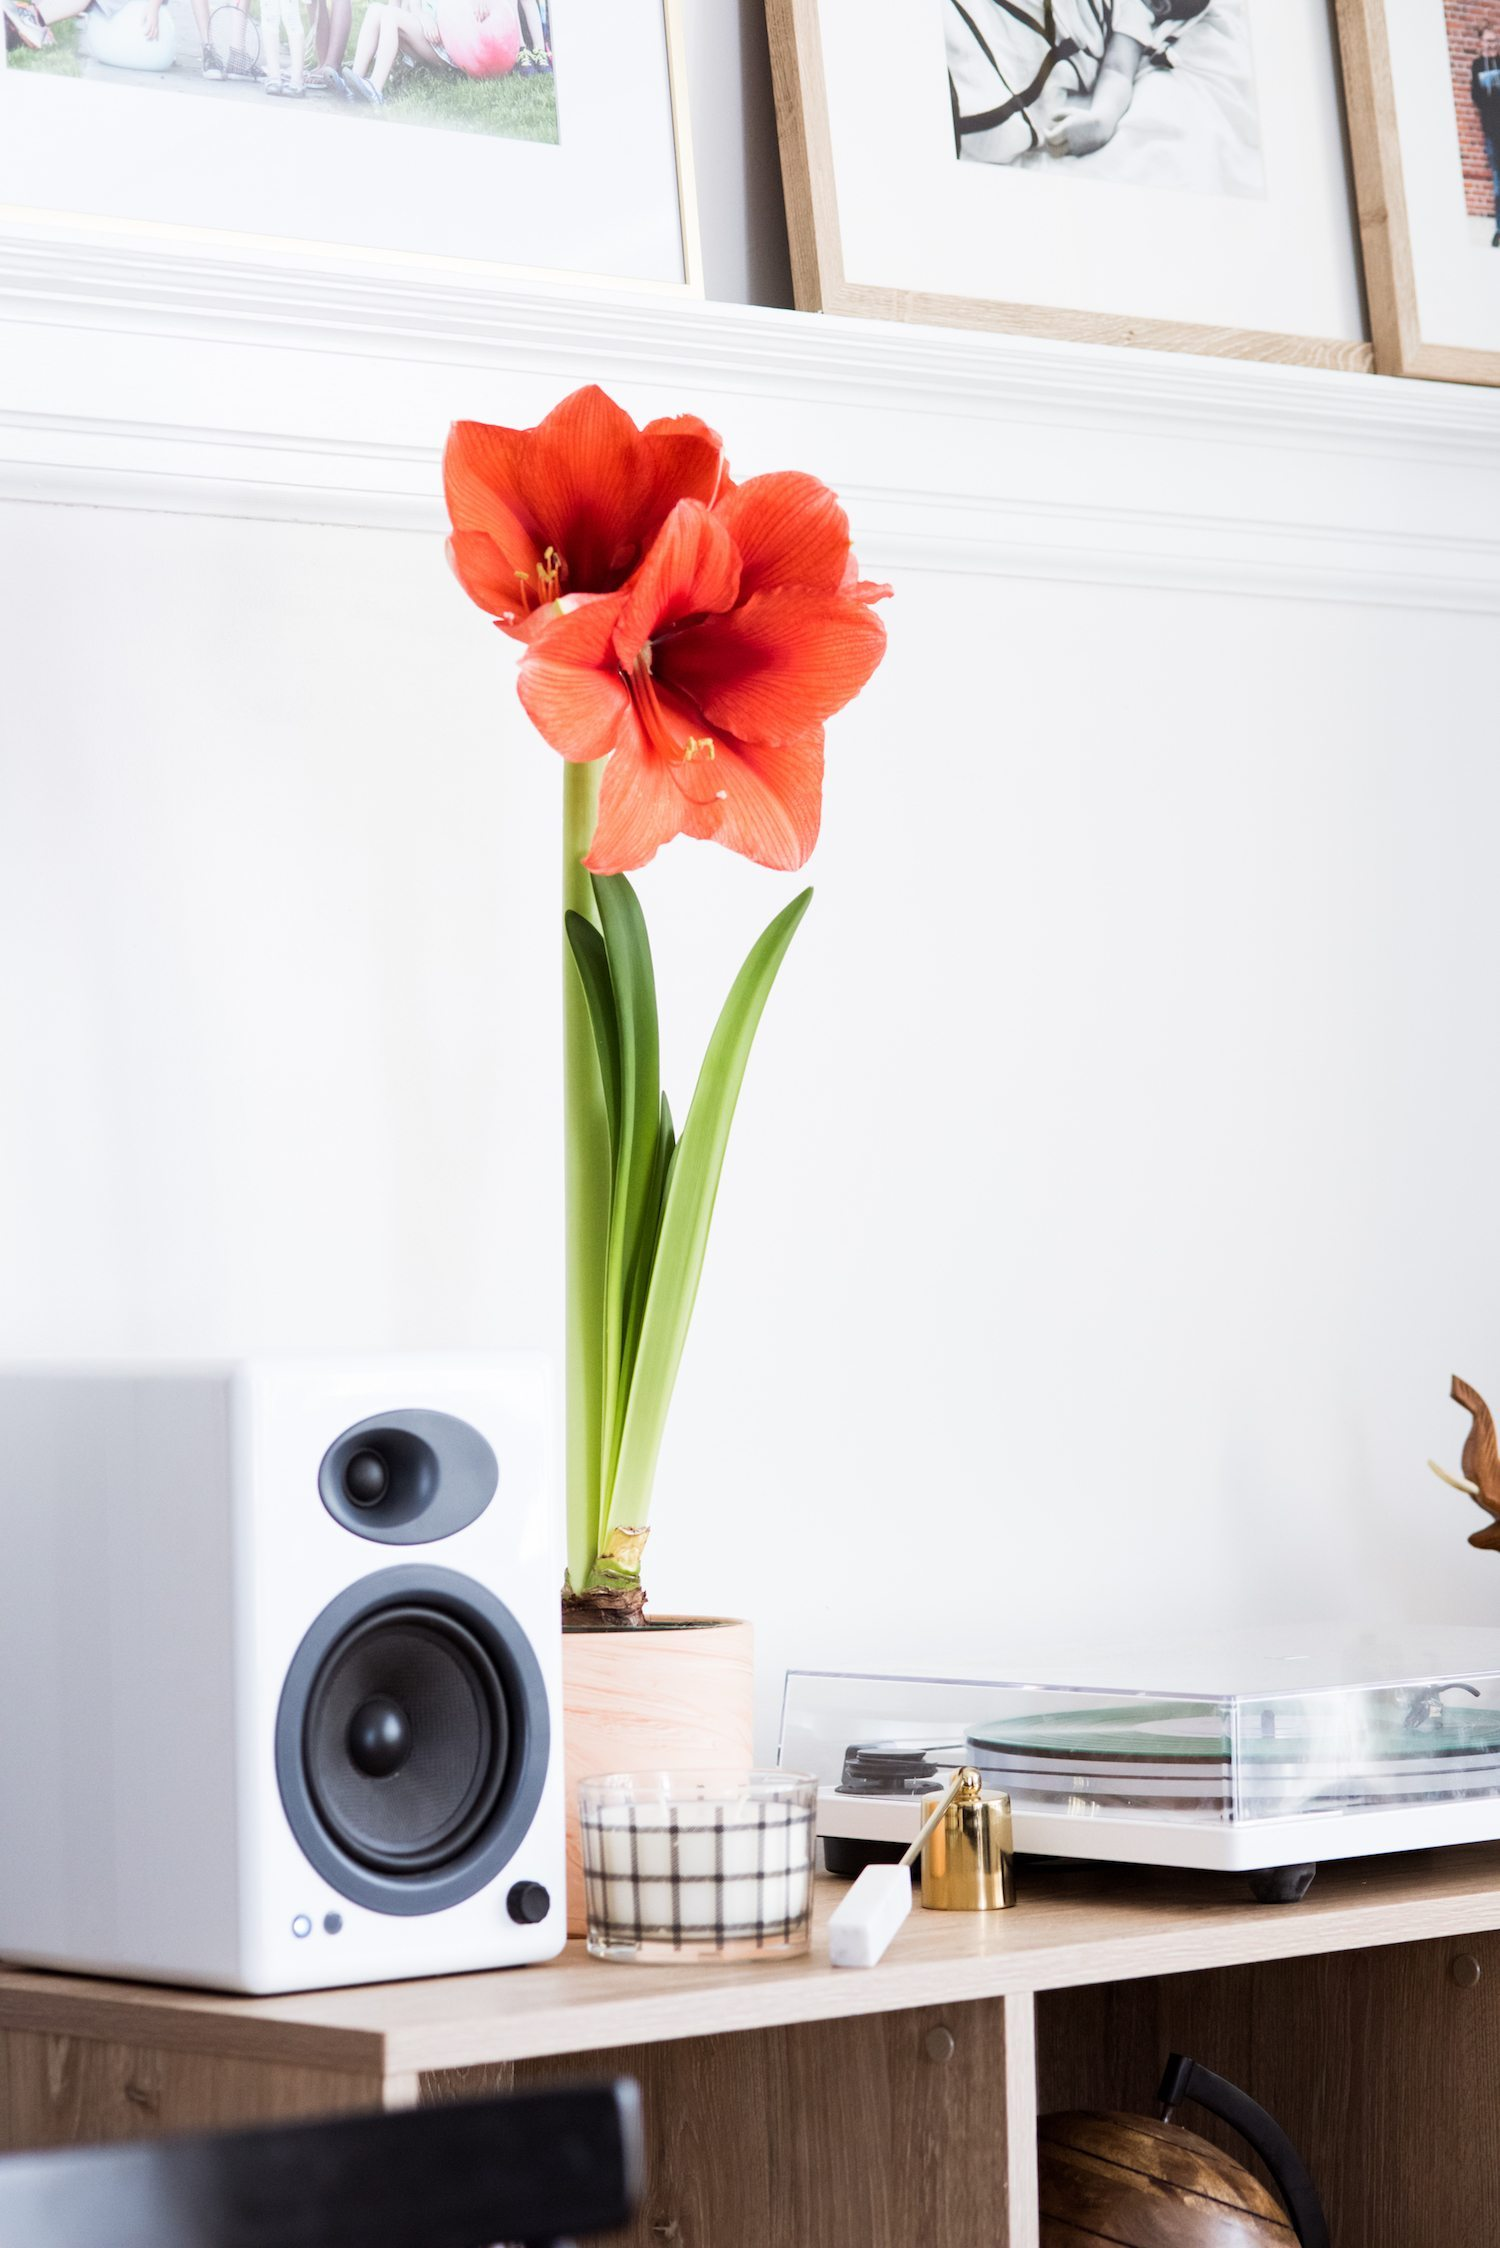 U-Turn Audio Orbit Review | Home decor ideas, entertaining tips, party ideas, party recipes and more from @cydconverse